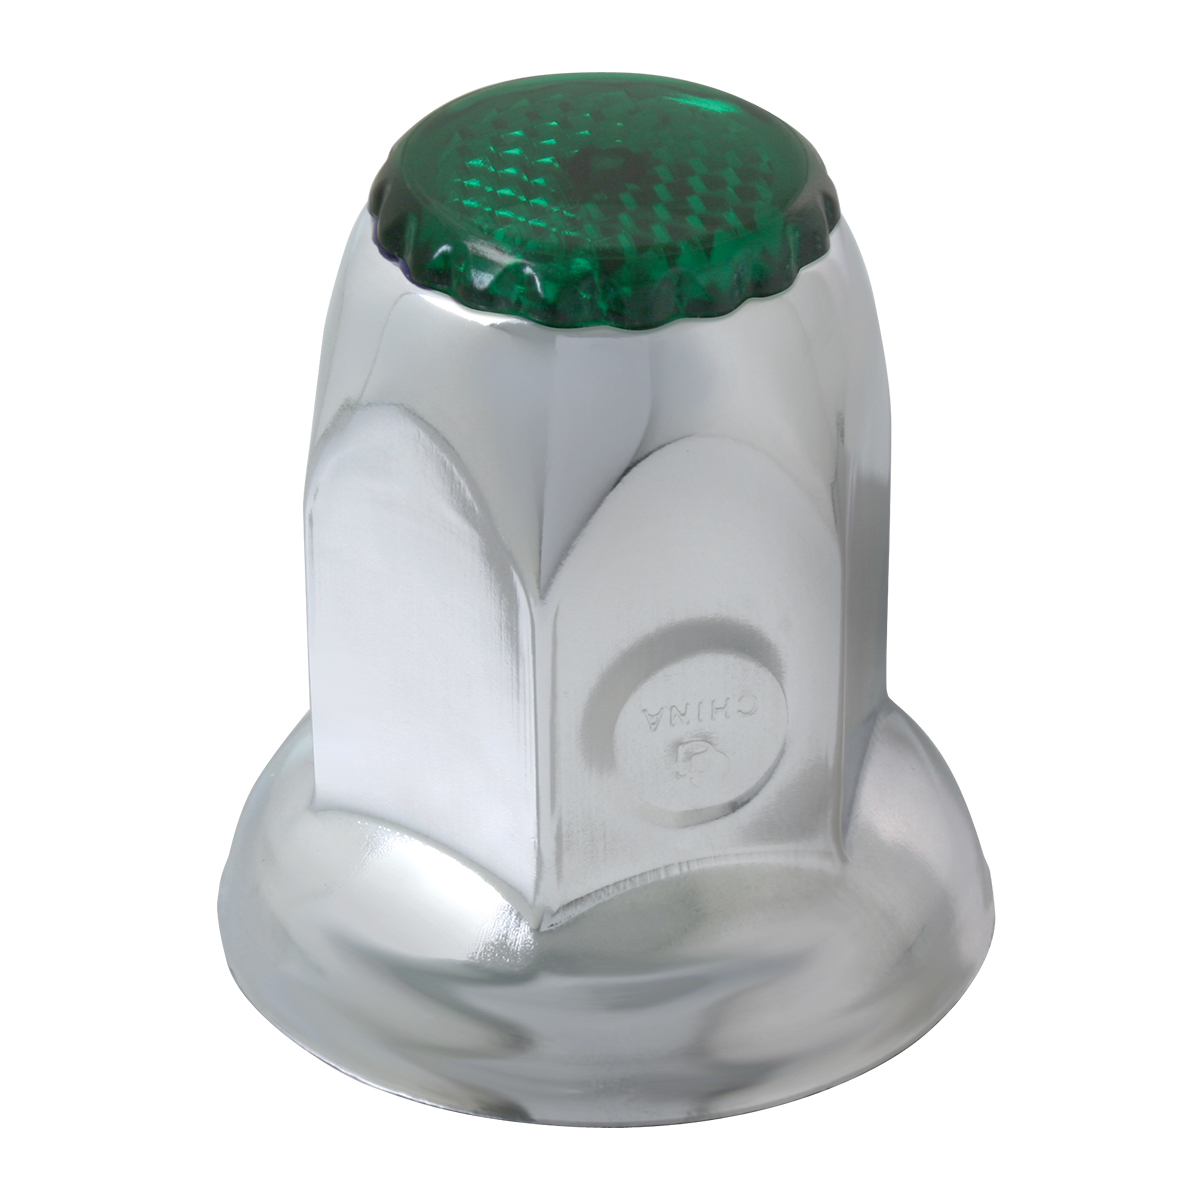 Classic Stainless Steel 33mm Push-On Lug Nut Cover w/ Green Reflector